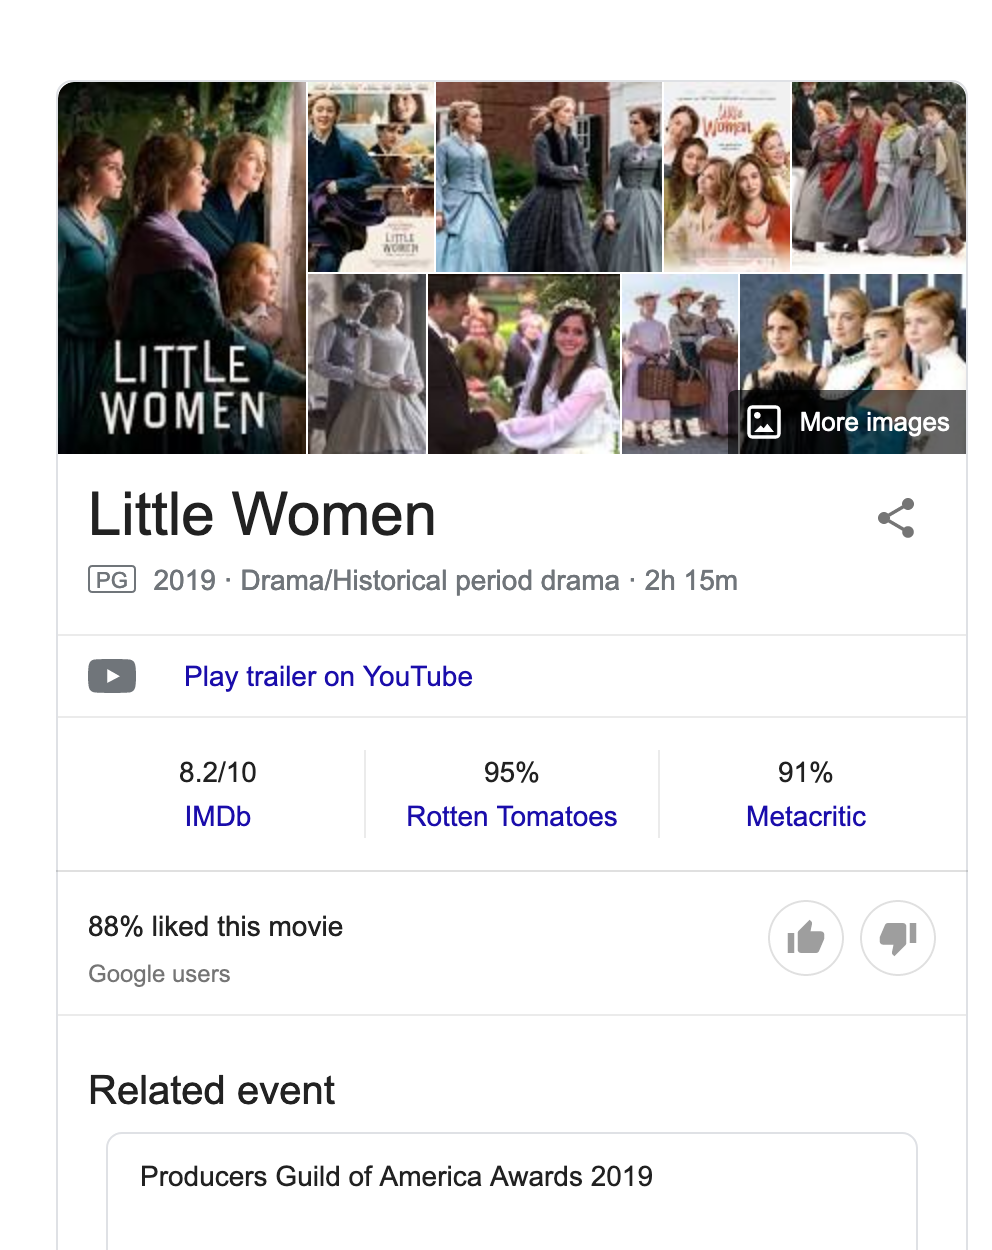 knowledge graph example for little women movie